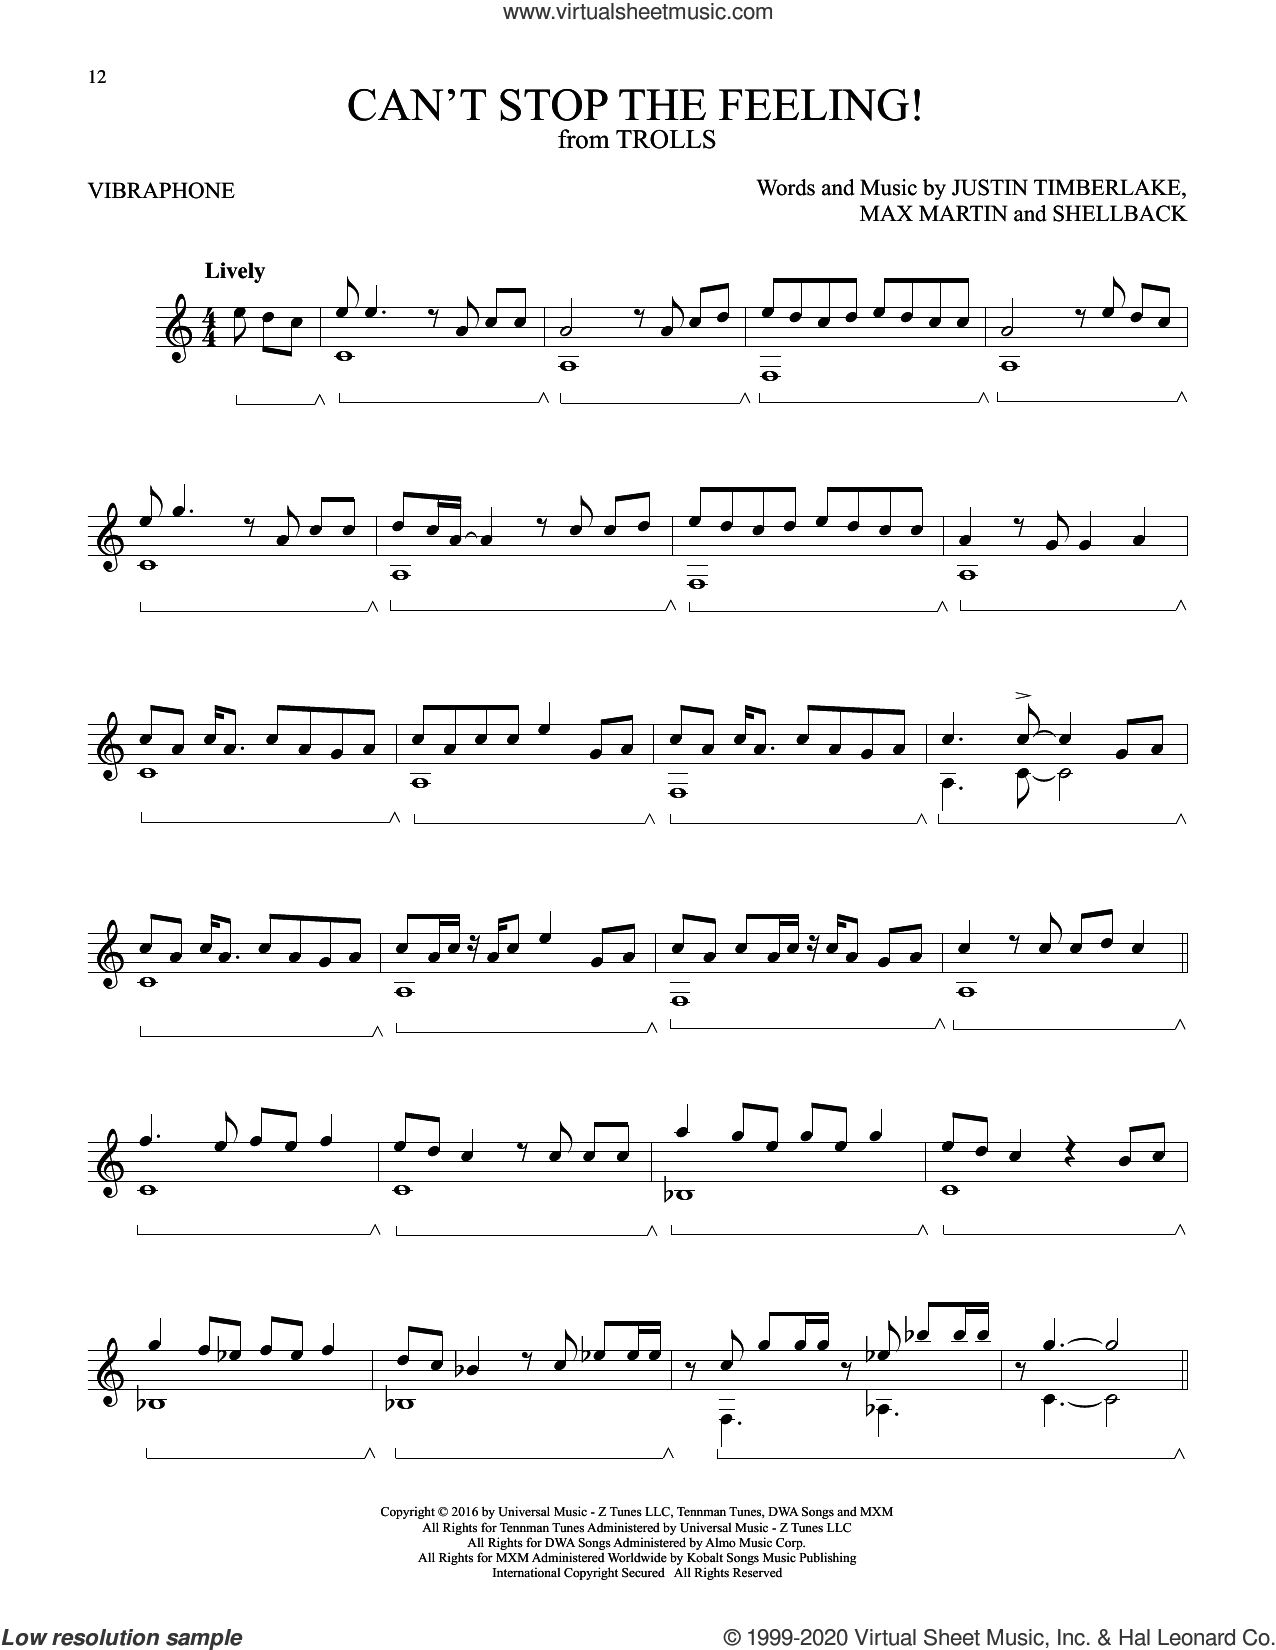 Can't Stop The Feeling! sheet music for Vibraphone Solo by Justin Timberlake, Johan Schuster, Max Martin and Shellback, intermediate skill level